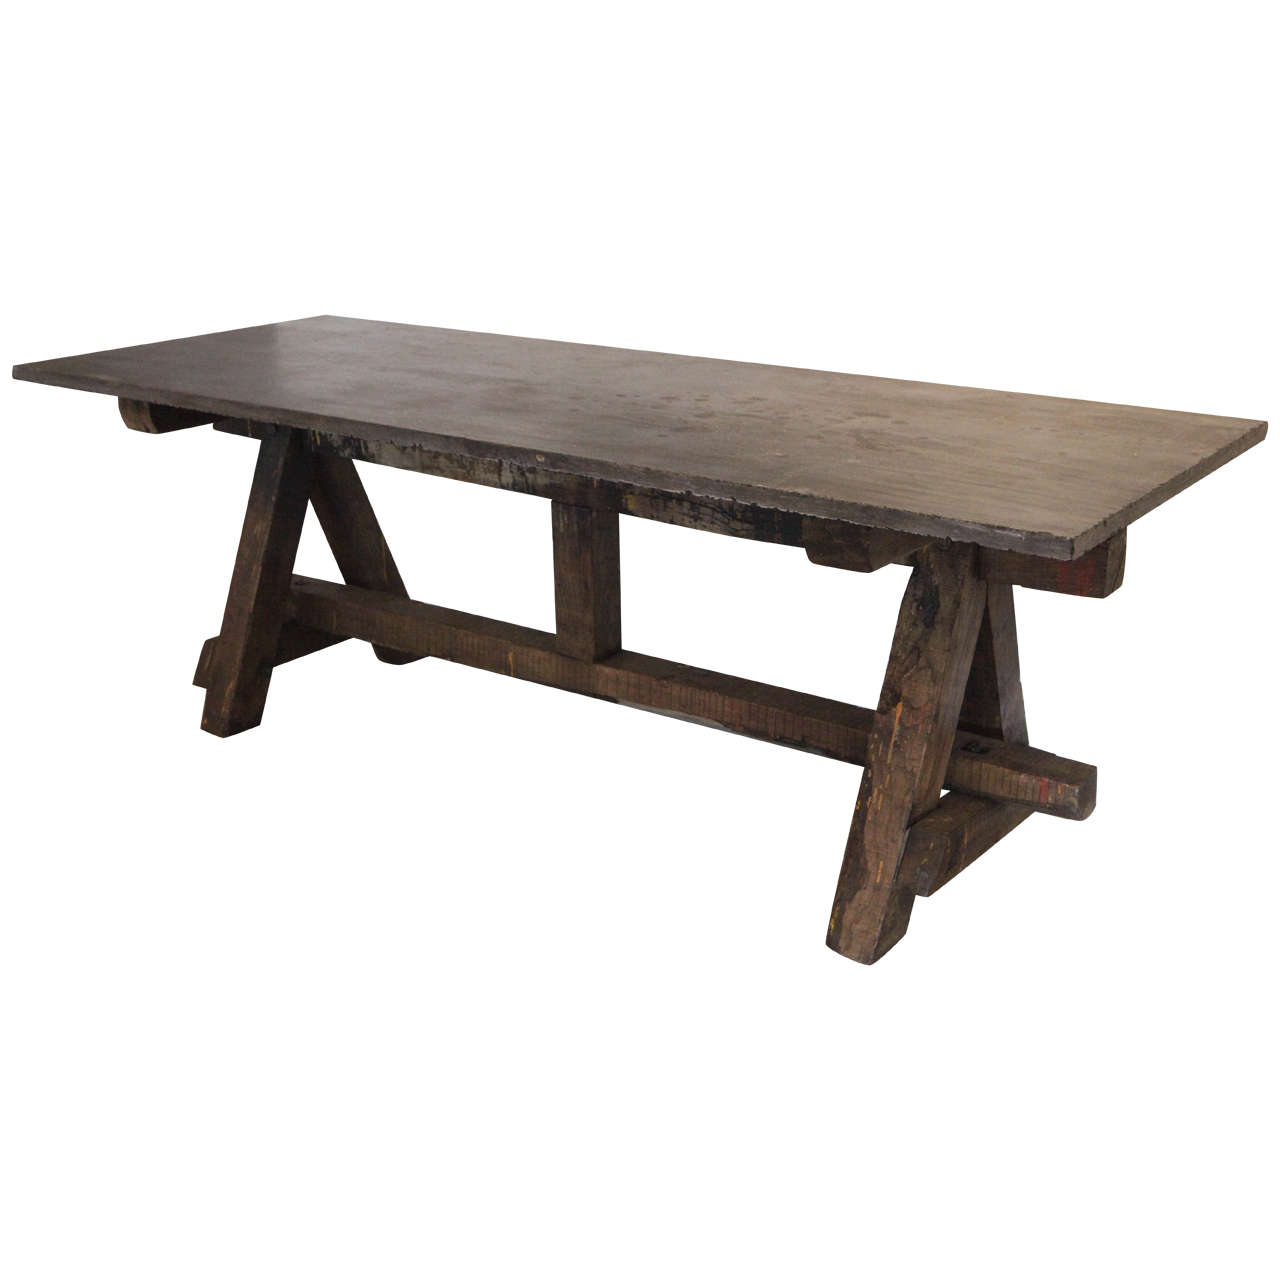 Perfect for a console or a kitchen island.